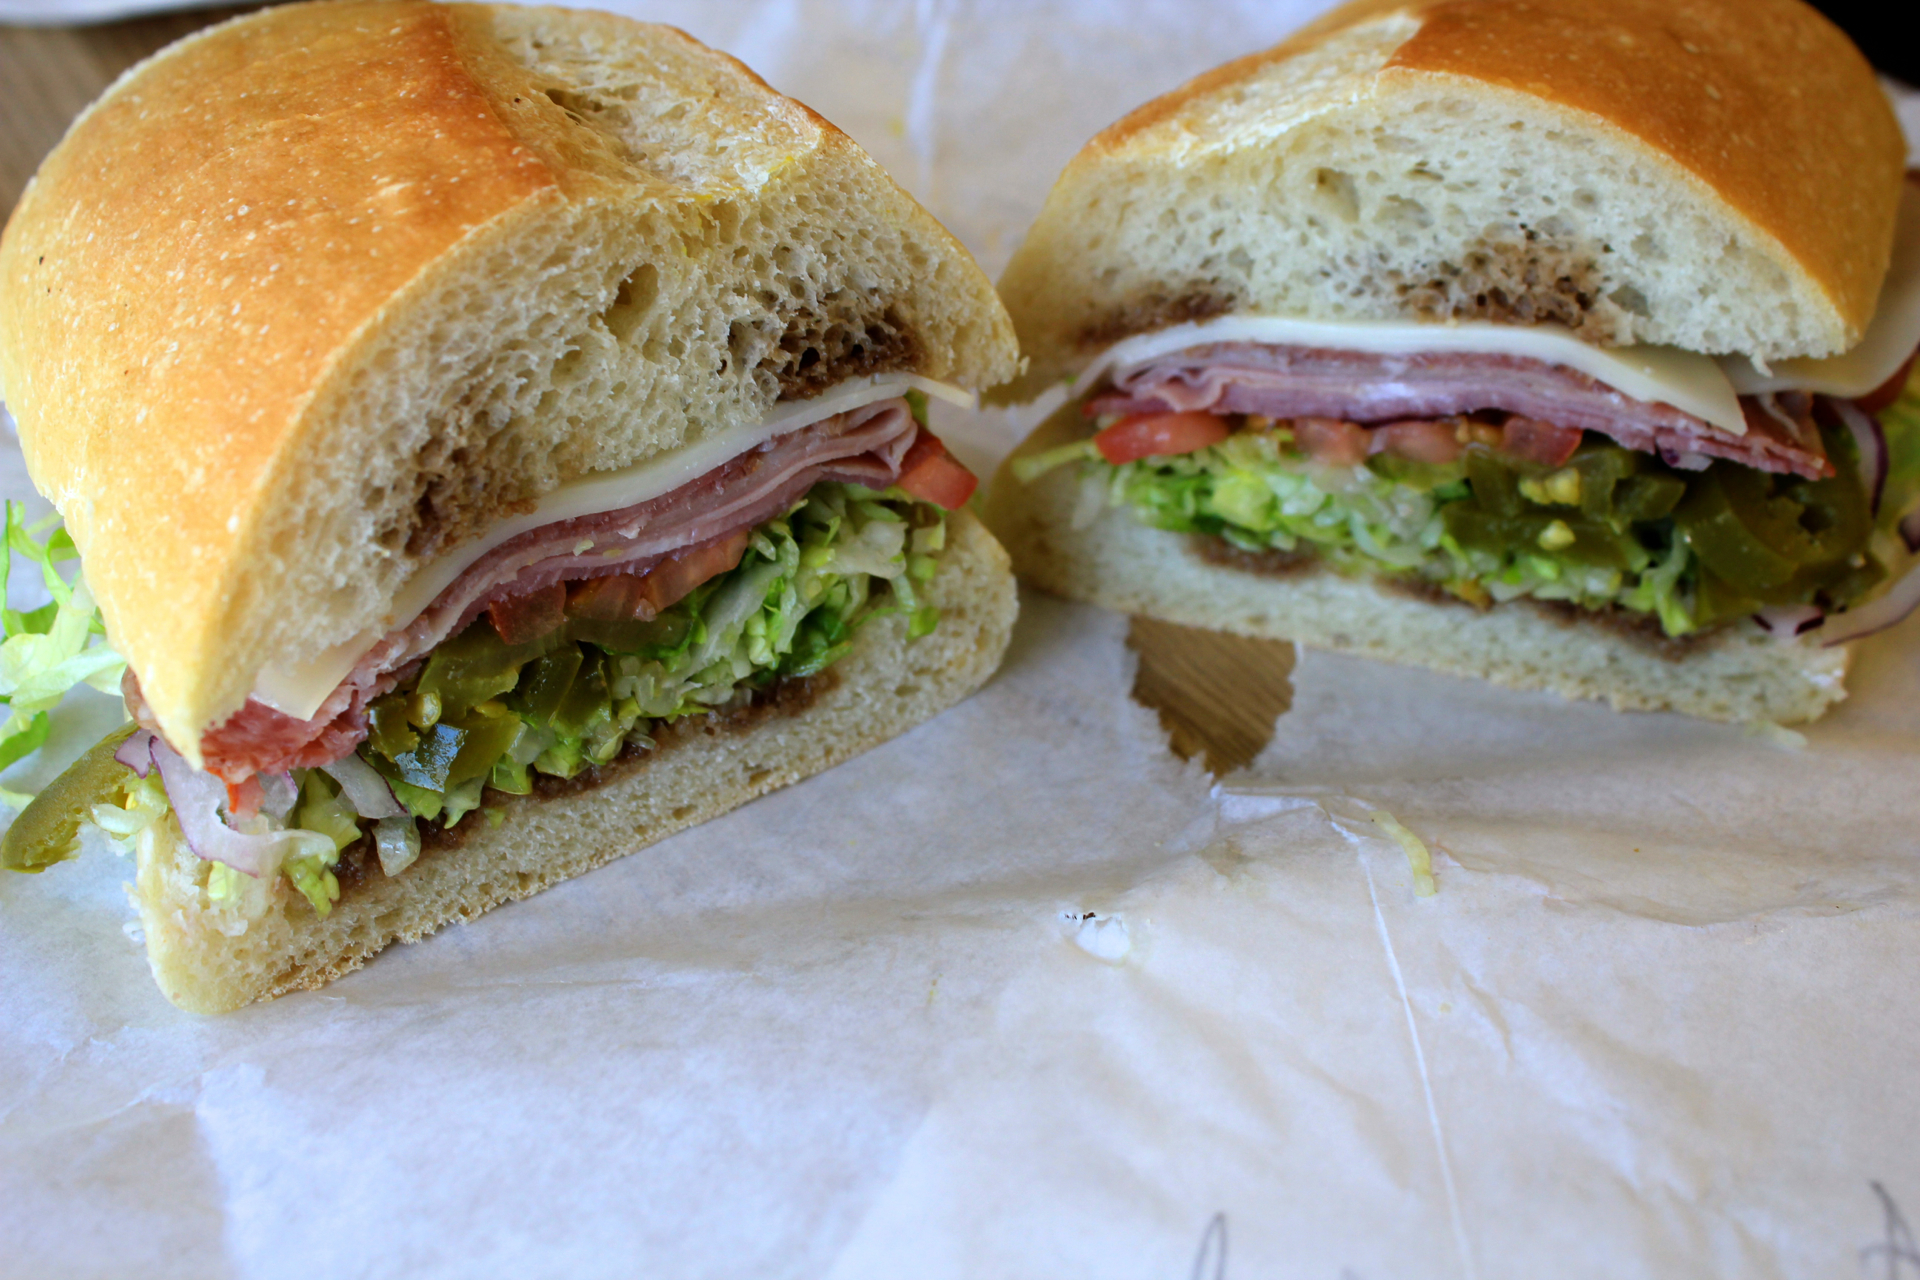 An Italian submarine sandwich with mortadella, cappocolo and Genoa salami at Chiaramonte's Deli & Sausages.